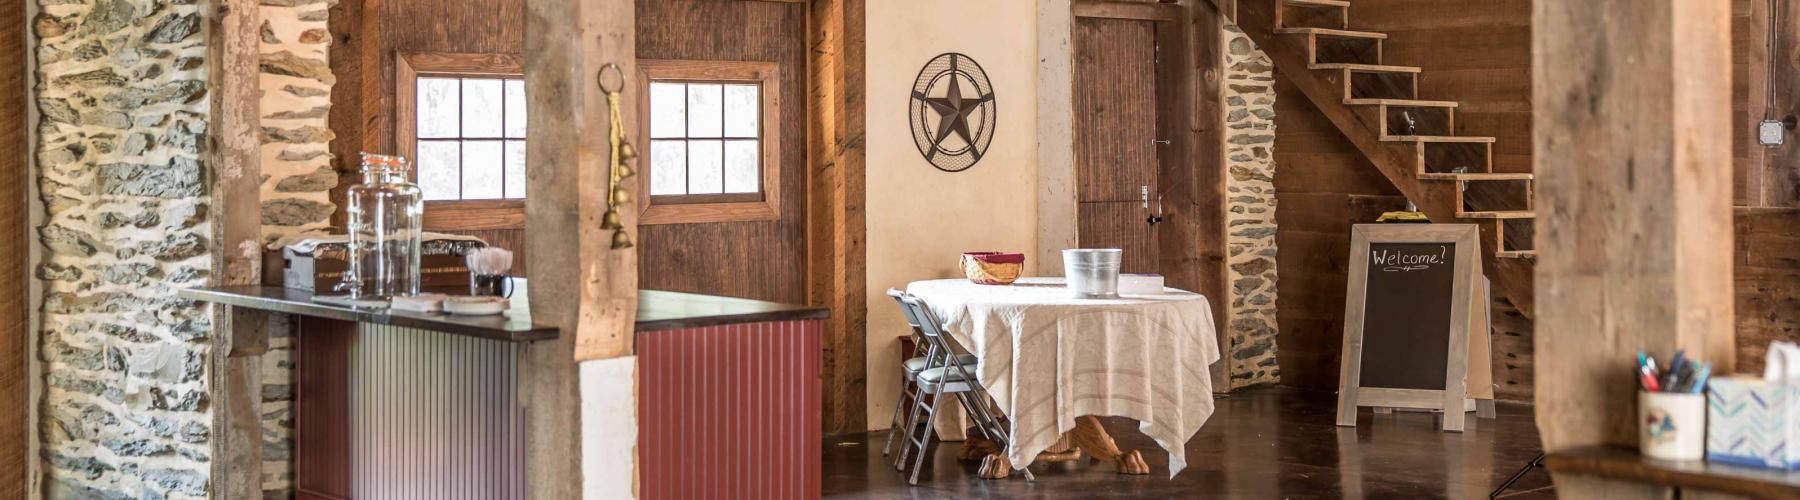 Stable Hollow Construction turned this old barn into an event space